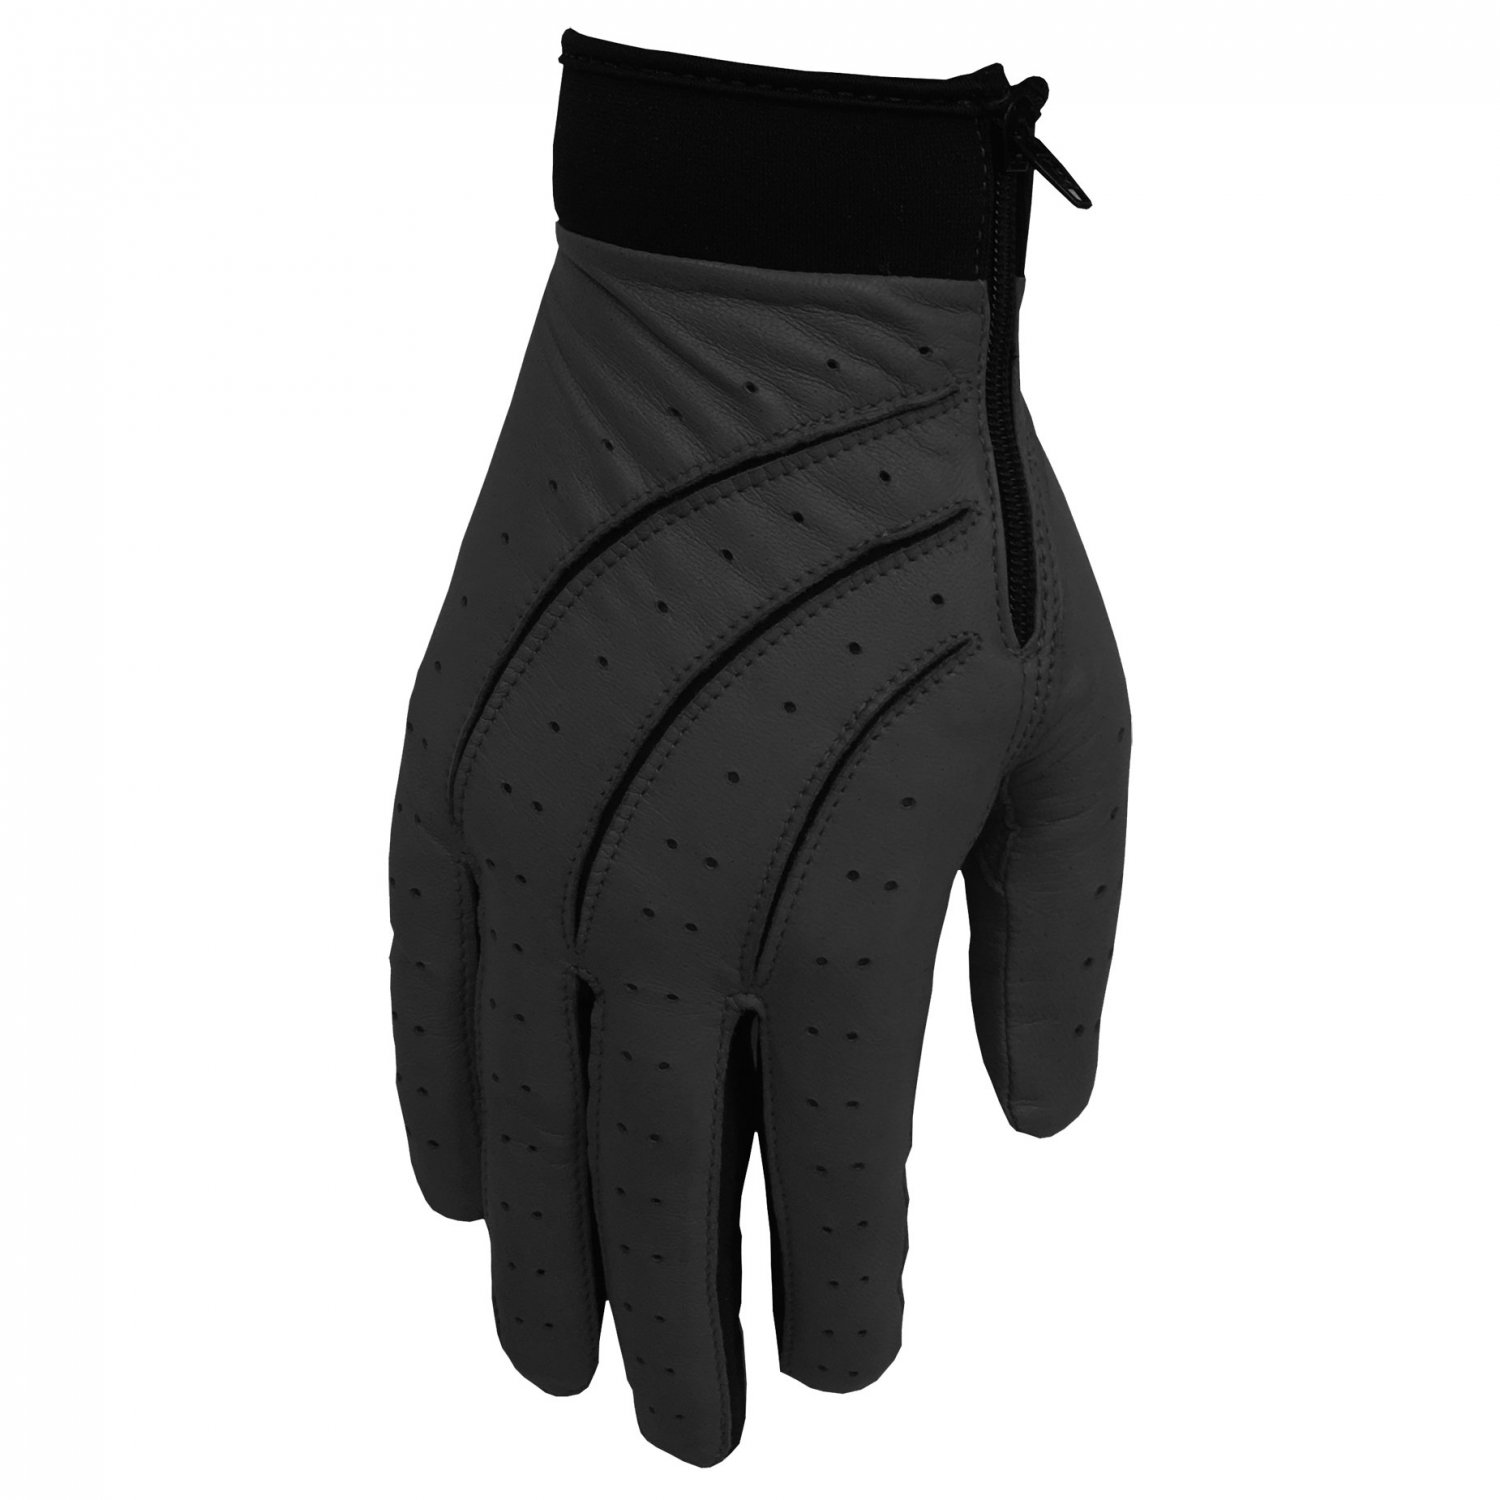 Hilts-Willard Men's Leather Stretch Driving Gloves - XL - Black